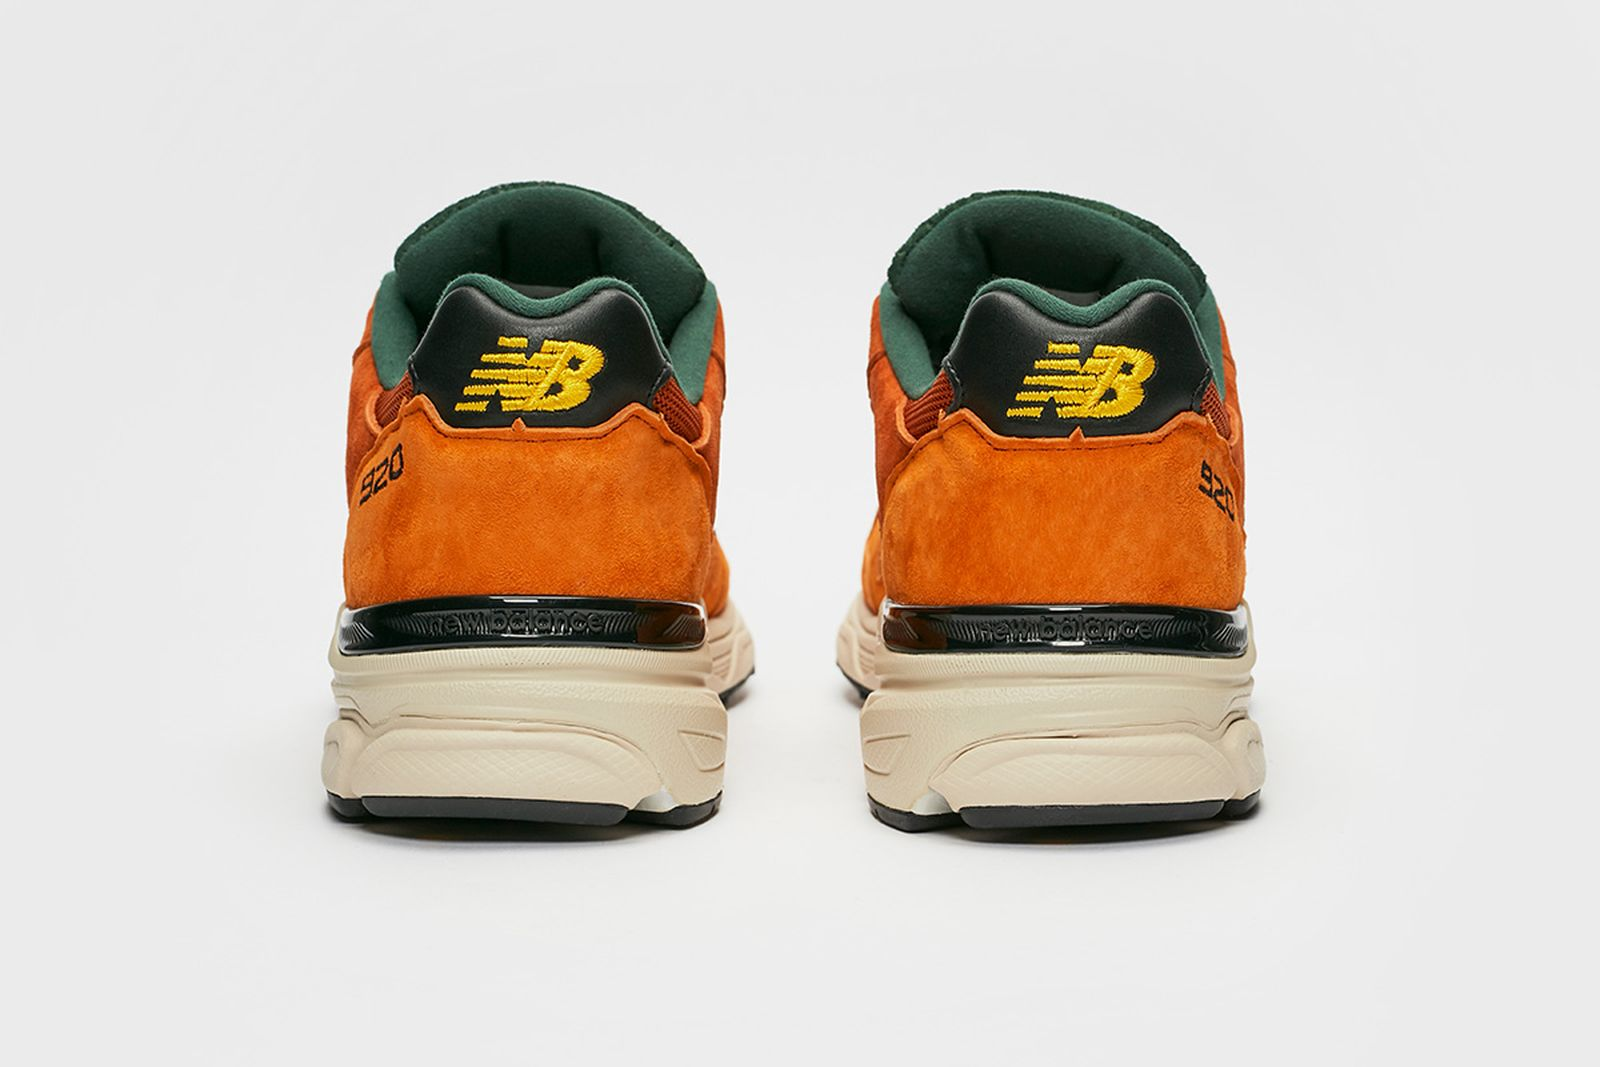 sns-new-balance-920-release-date-price-02